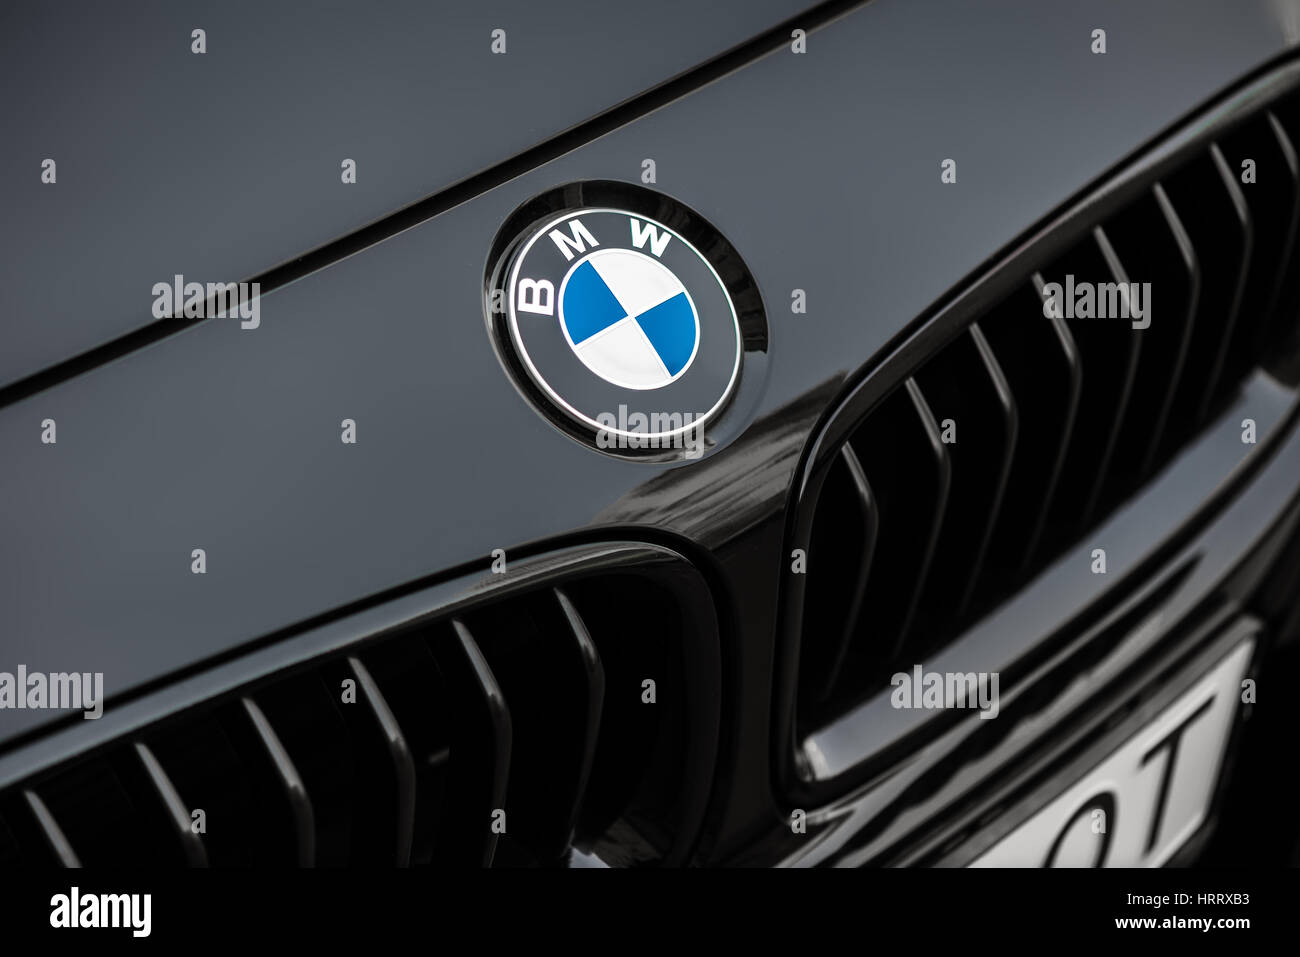 Kyiv, Ukraine - March 4th, 2017: Bmw motor company badge on the front from a black car. BMW is a German automobile, - Stock Image